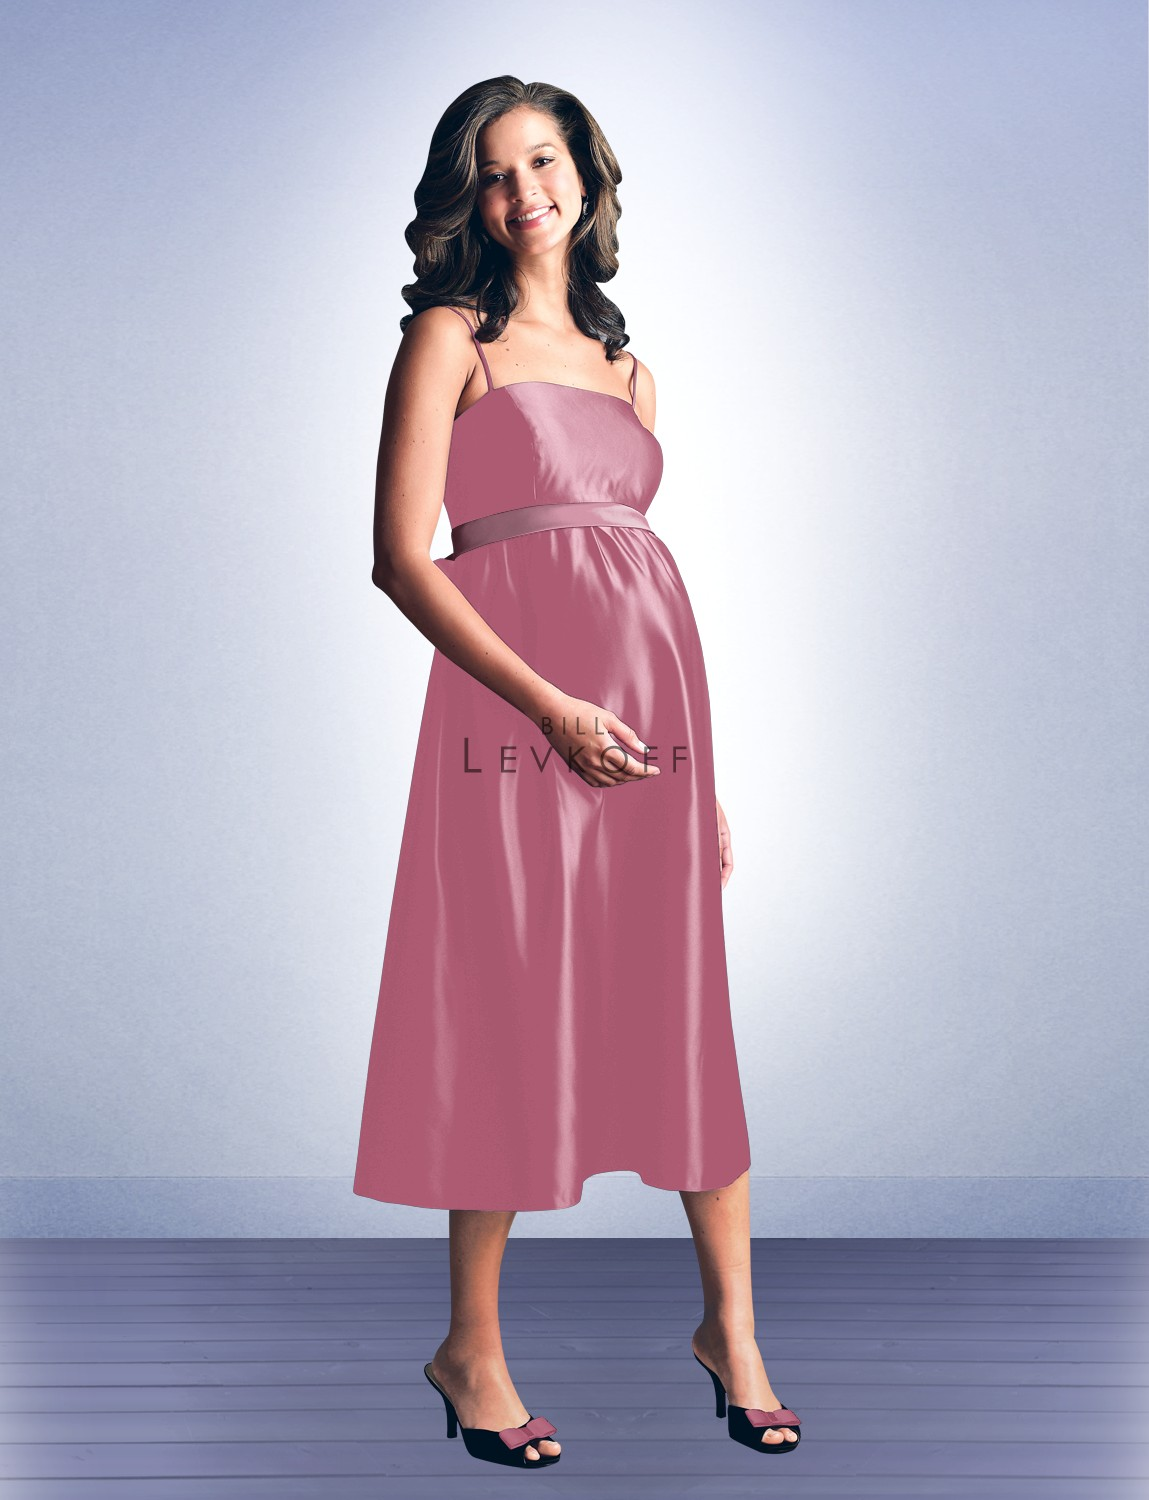 Collezione fortuna bridesmaids dresses series part 2 one of my the above is just an example what we have available for your bridesmaids should a pregnancy occur with different stylesand colors available we can ombrellifo Choice Image